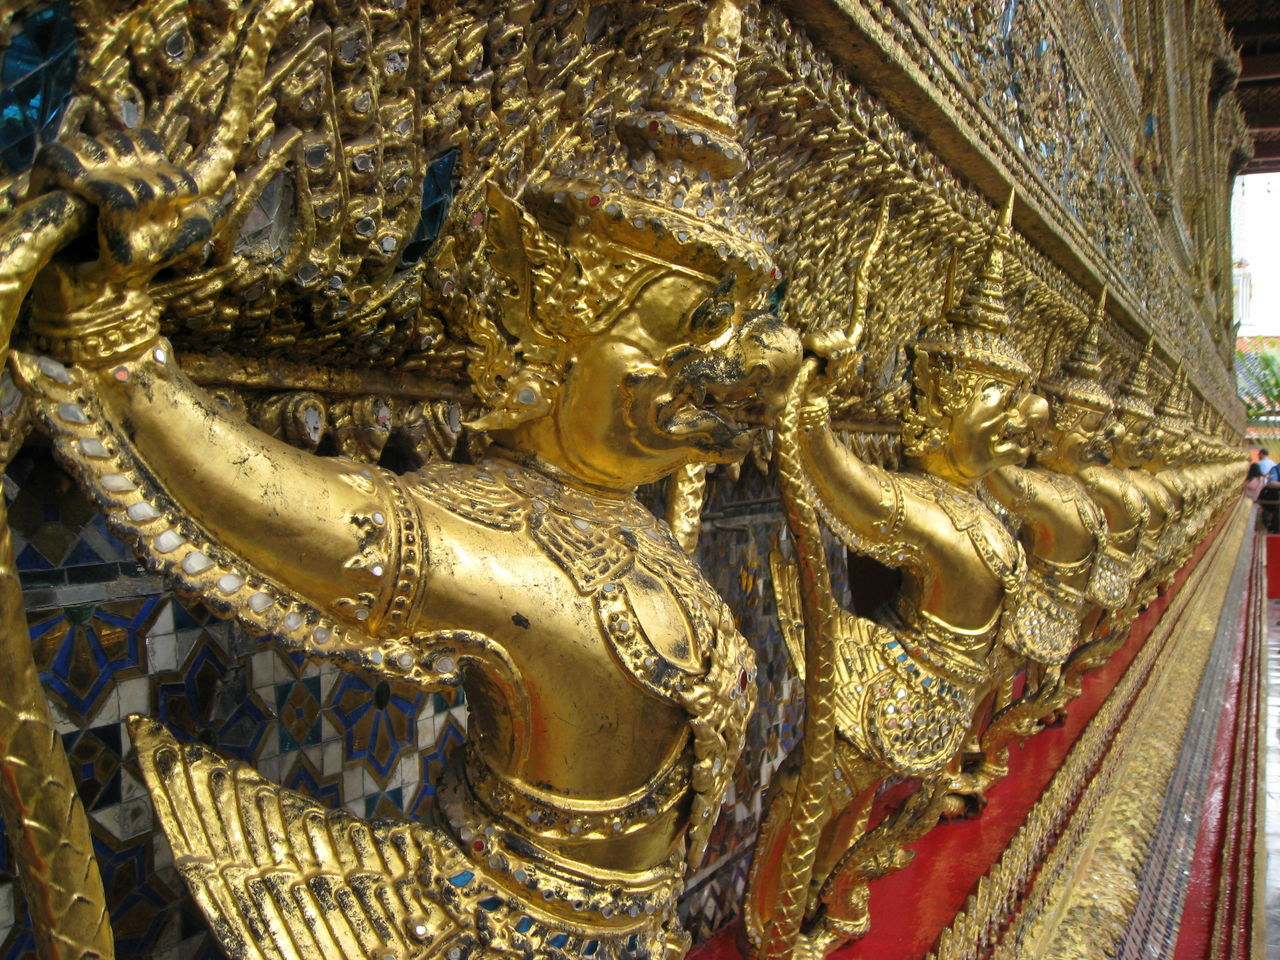 Far east visit Sculpture Golden Mythology History Ancient Civilization Bangkok Thailand Thailand_allshots Culture Wat Phra Kaew Wat Phra Kaeo